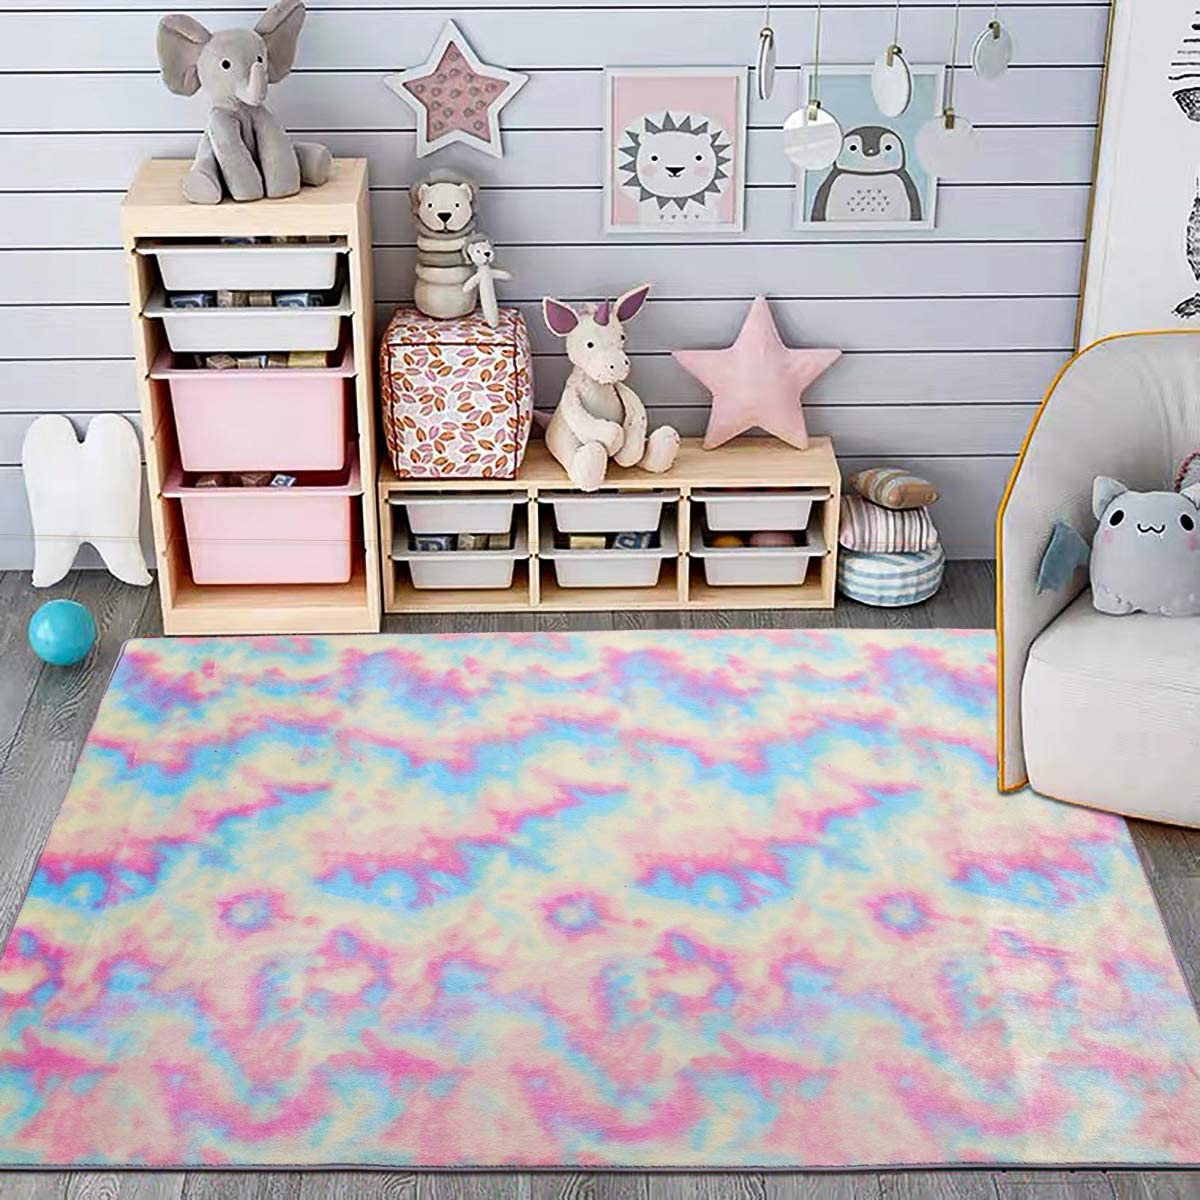 Maxsoft Furry Kids Rainbow Rugs Colorful Bed Area Selling and selling Girls for Popular product Rug